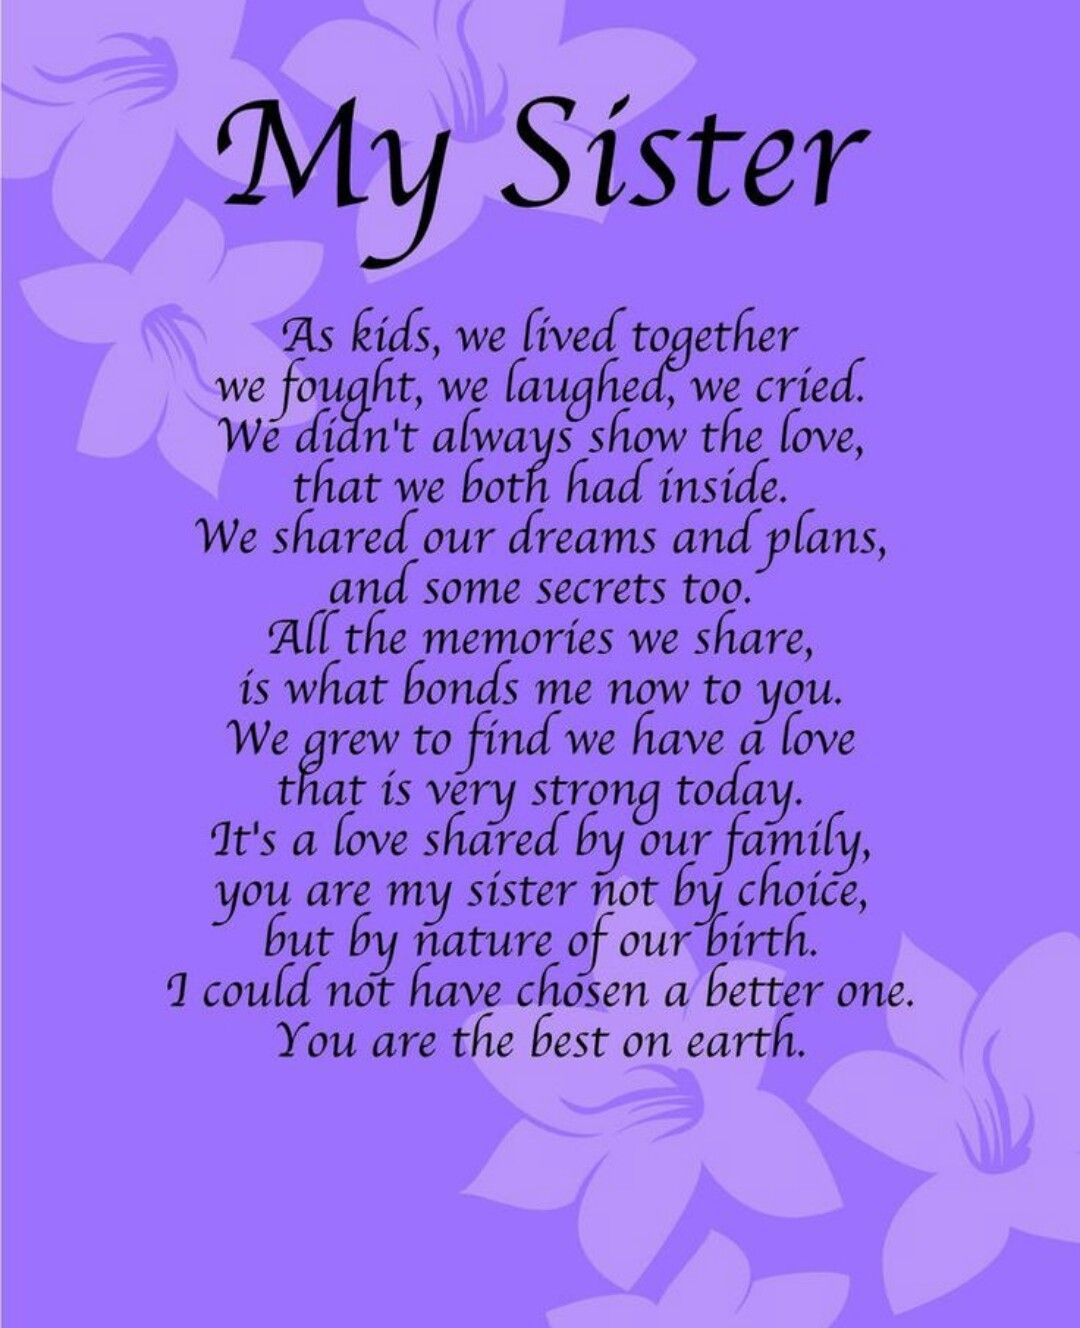 Love You Sister Quotes Sister Poems  Sister Poem Pictures Images And Photos  Family